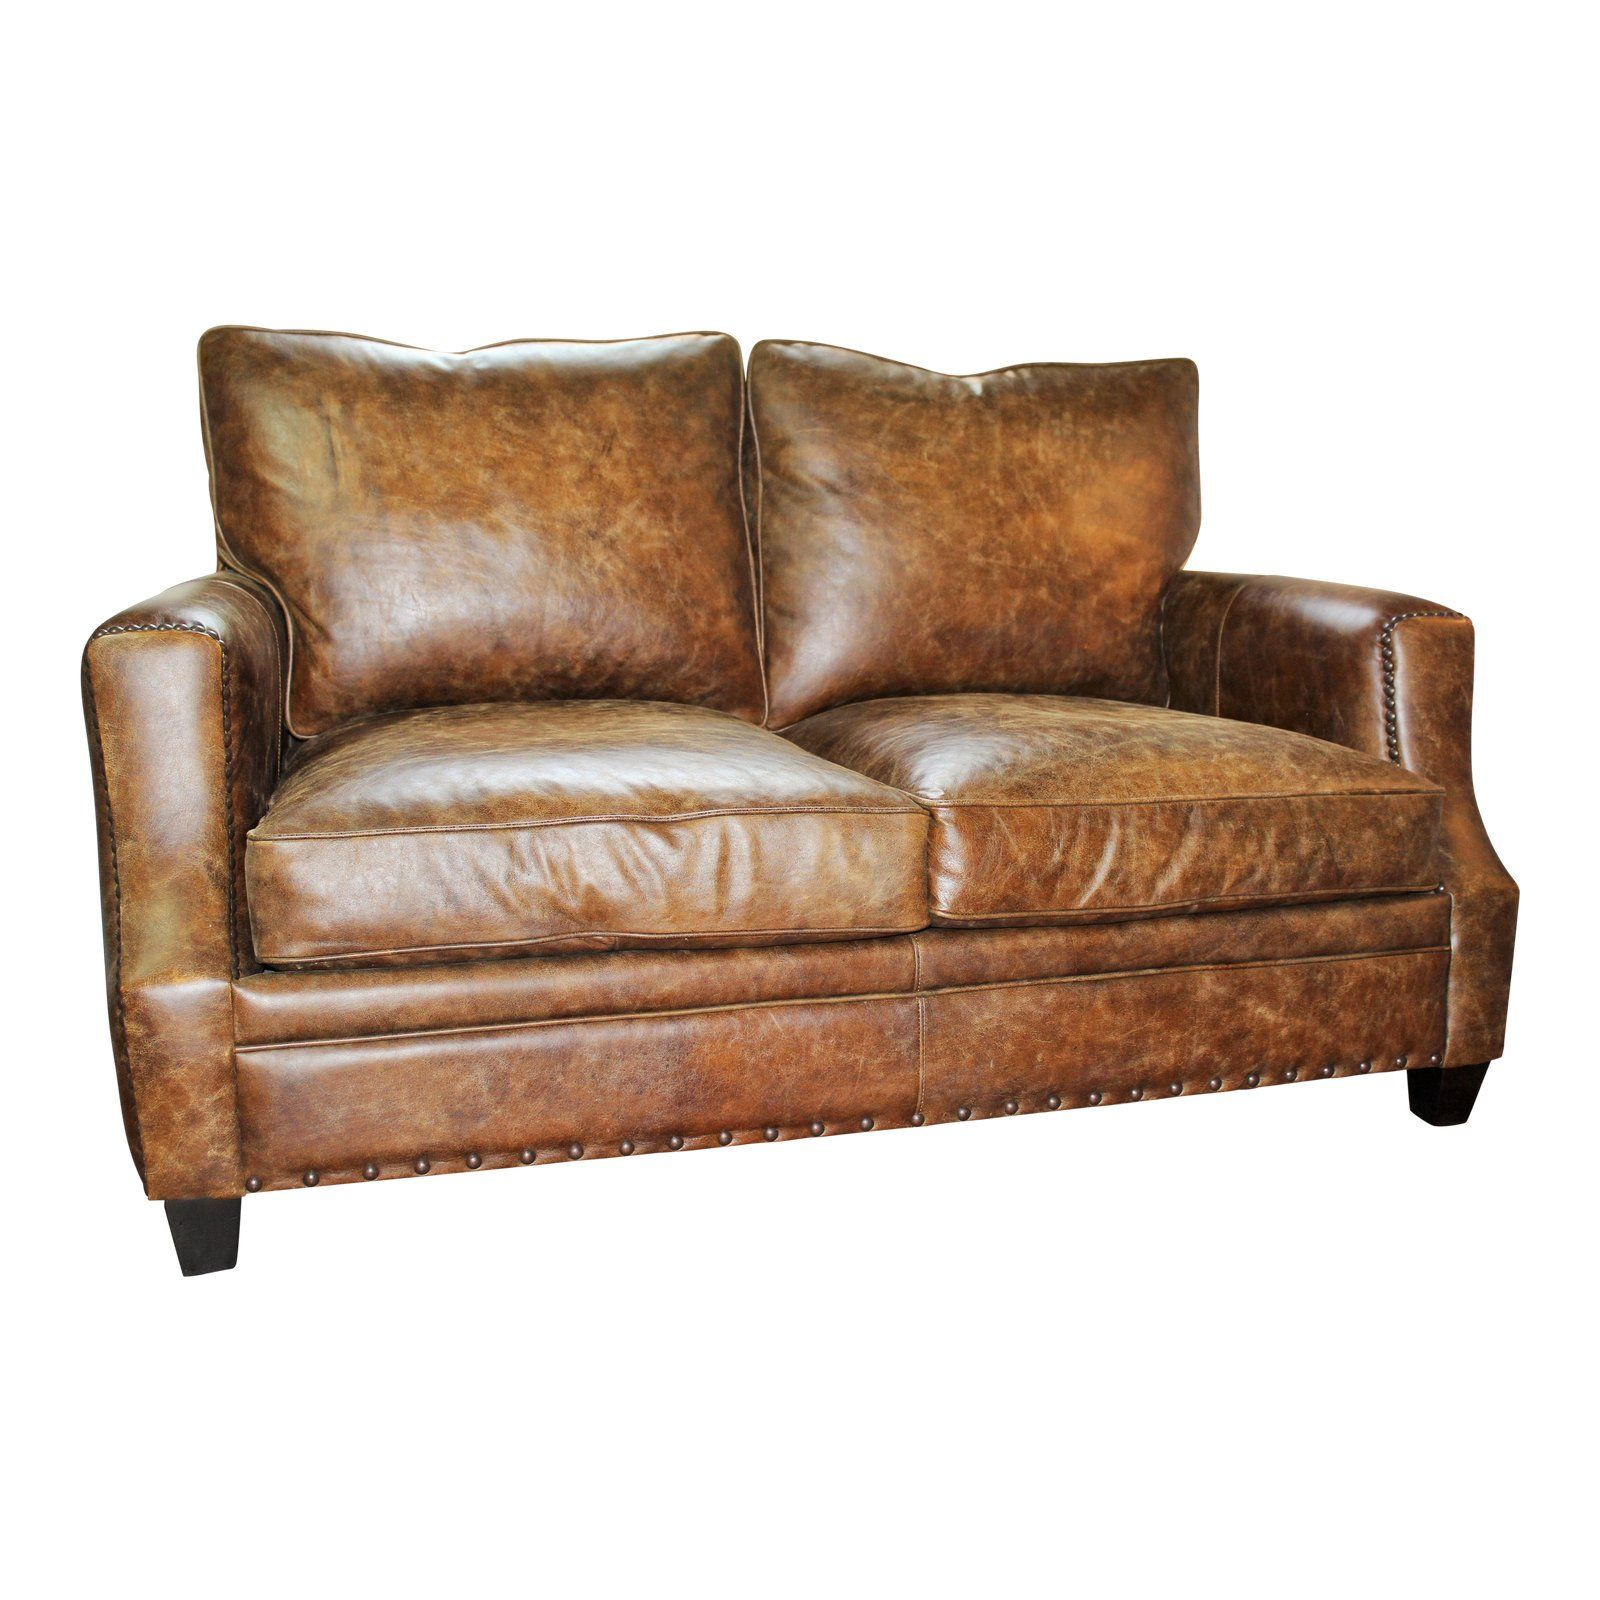 Terrific Bernhardt All Leather Loveseat In 2019 Wish List Leather Home Interior And Landscaping Ologienasavecom